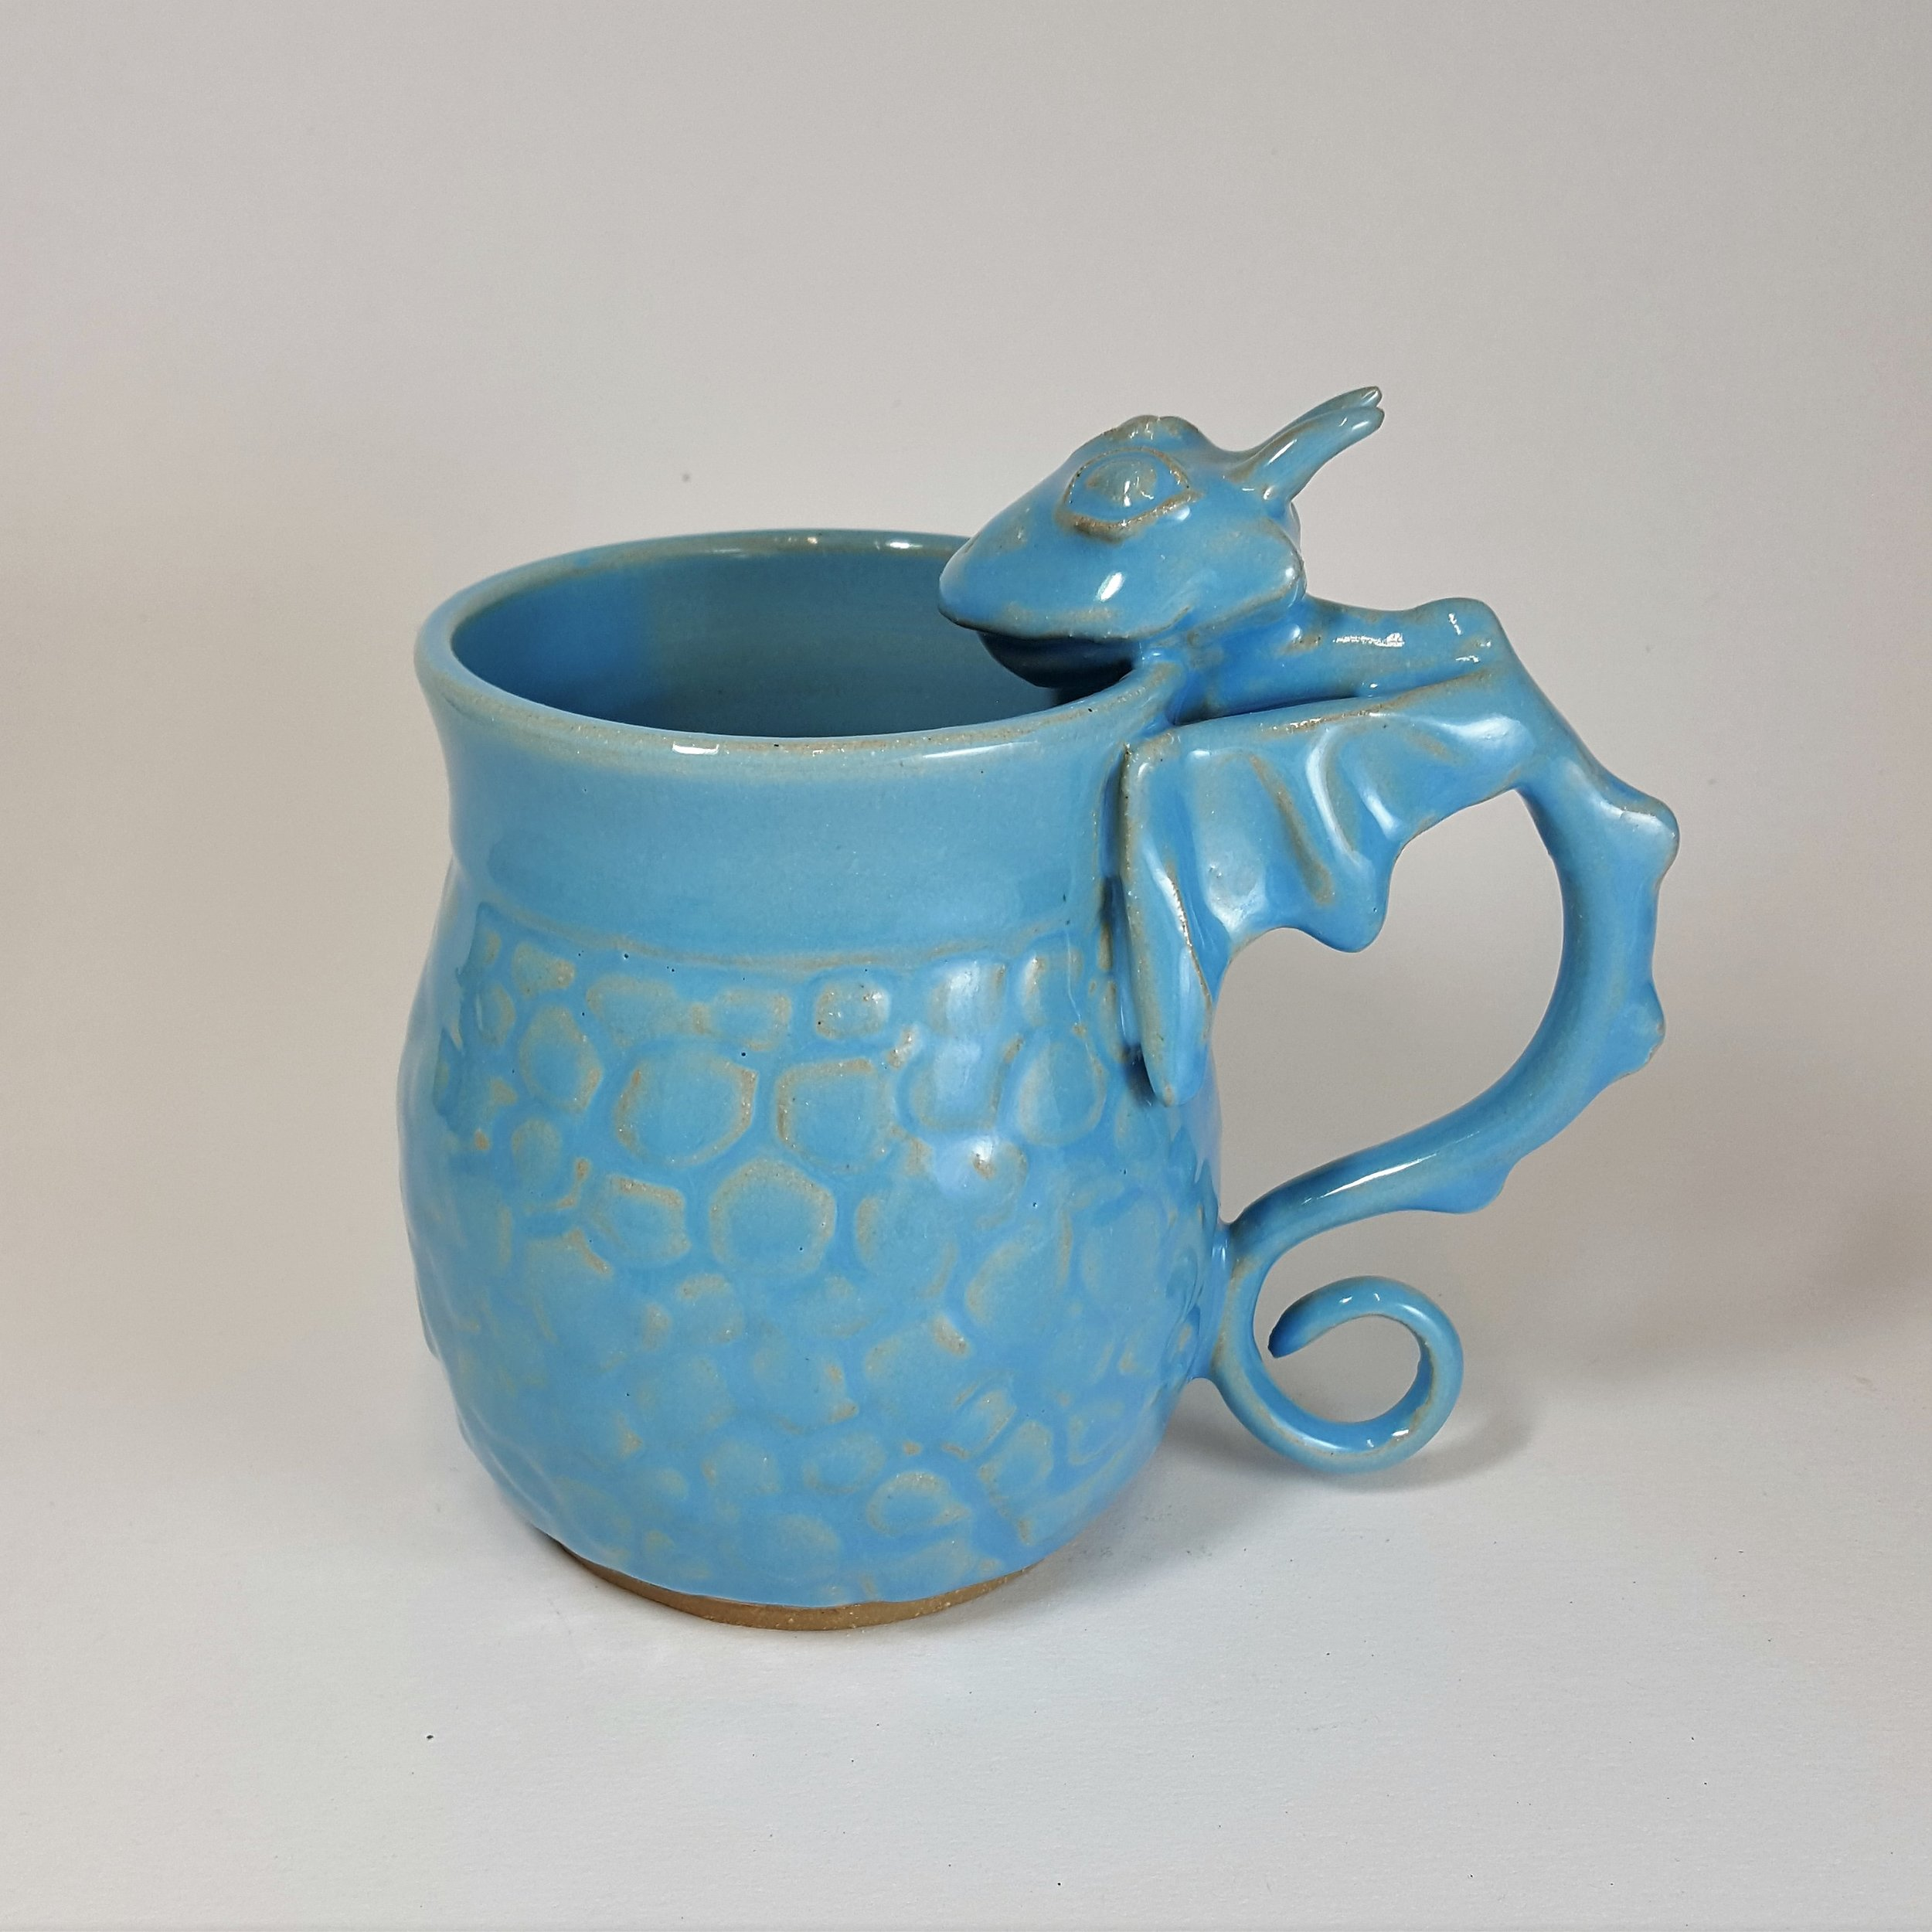 SPECIAL EDITION 21 oz. Light Blue Dragon Mug with Scale Detail - $80